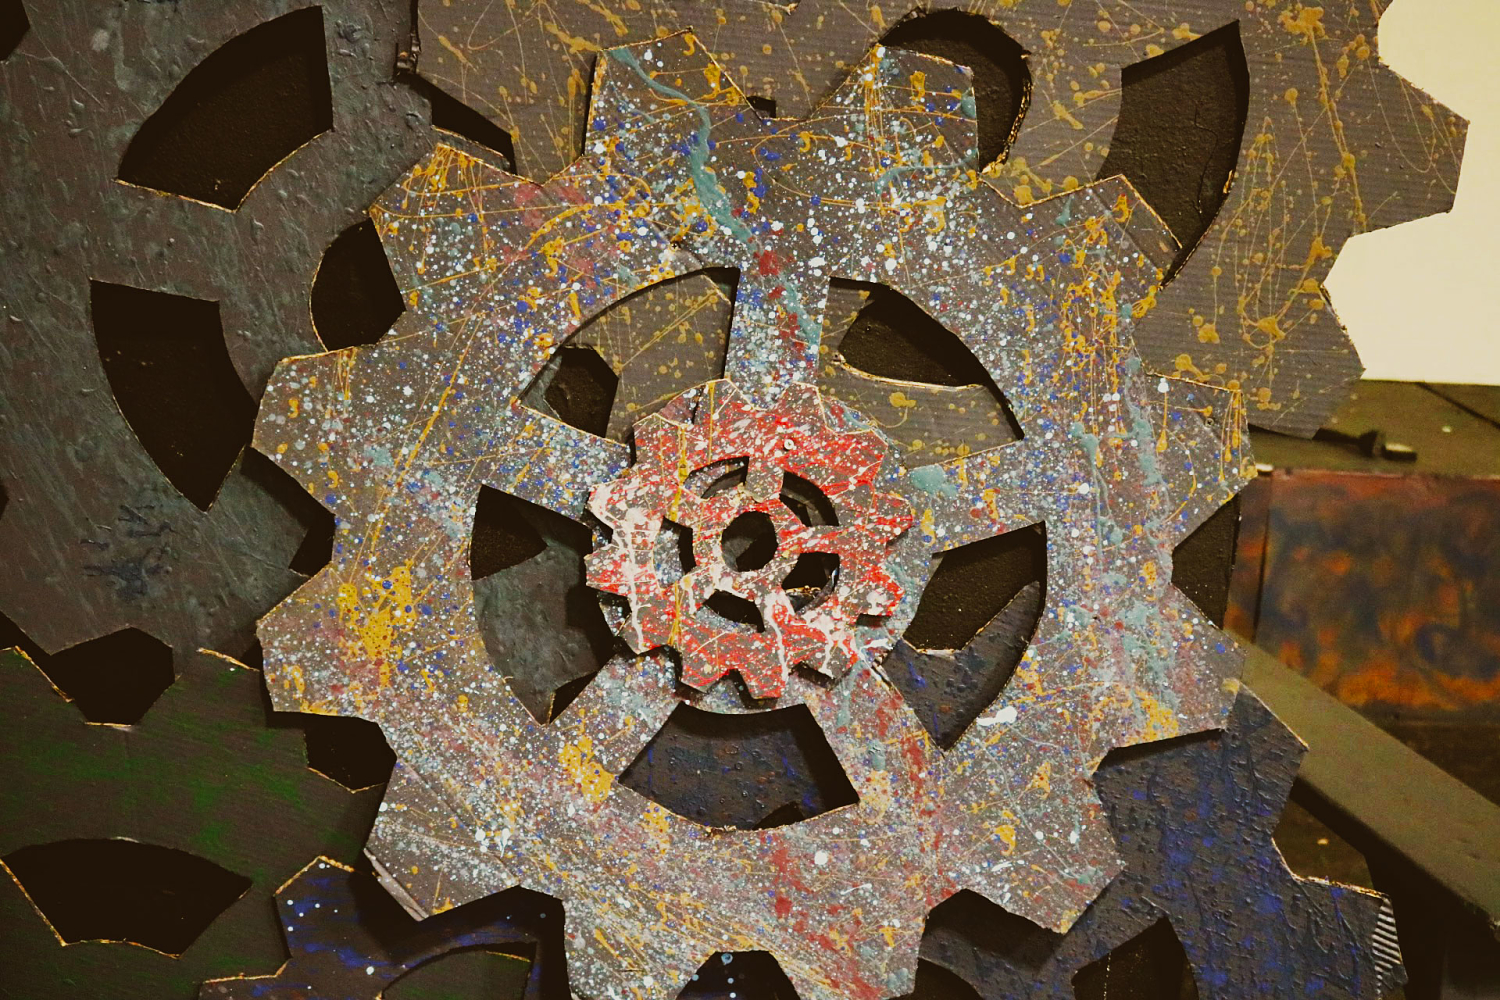 Steampunk cogs covered in paint splatters